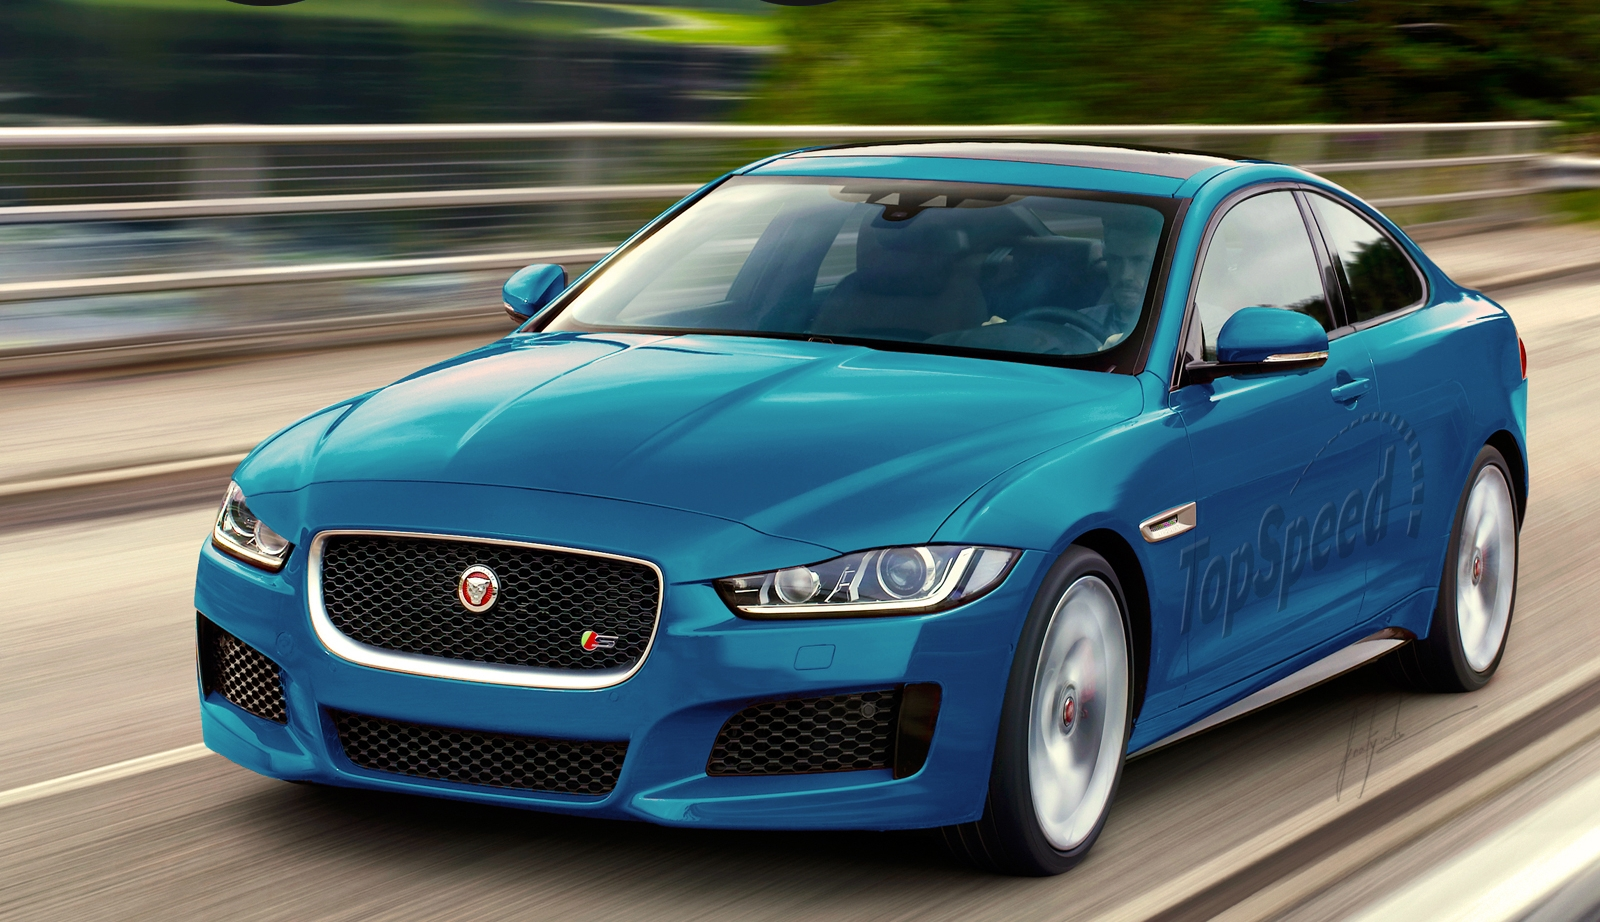 2017 jaguar xe coupe review top speed. Black Bedroom Furniture Sets. Home Design Ideas